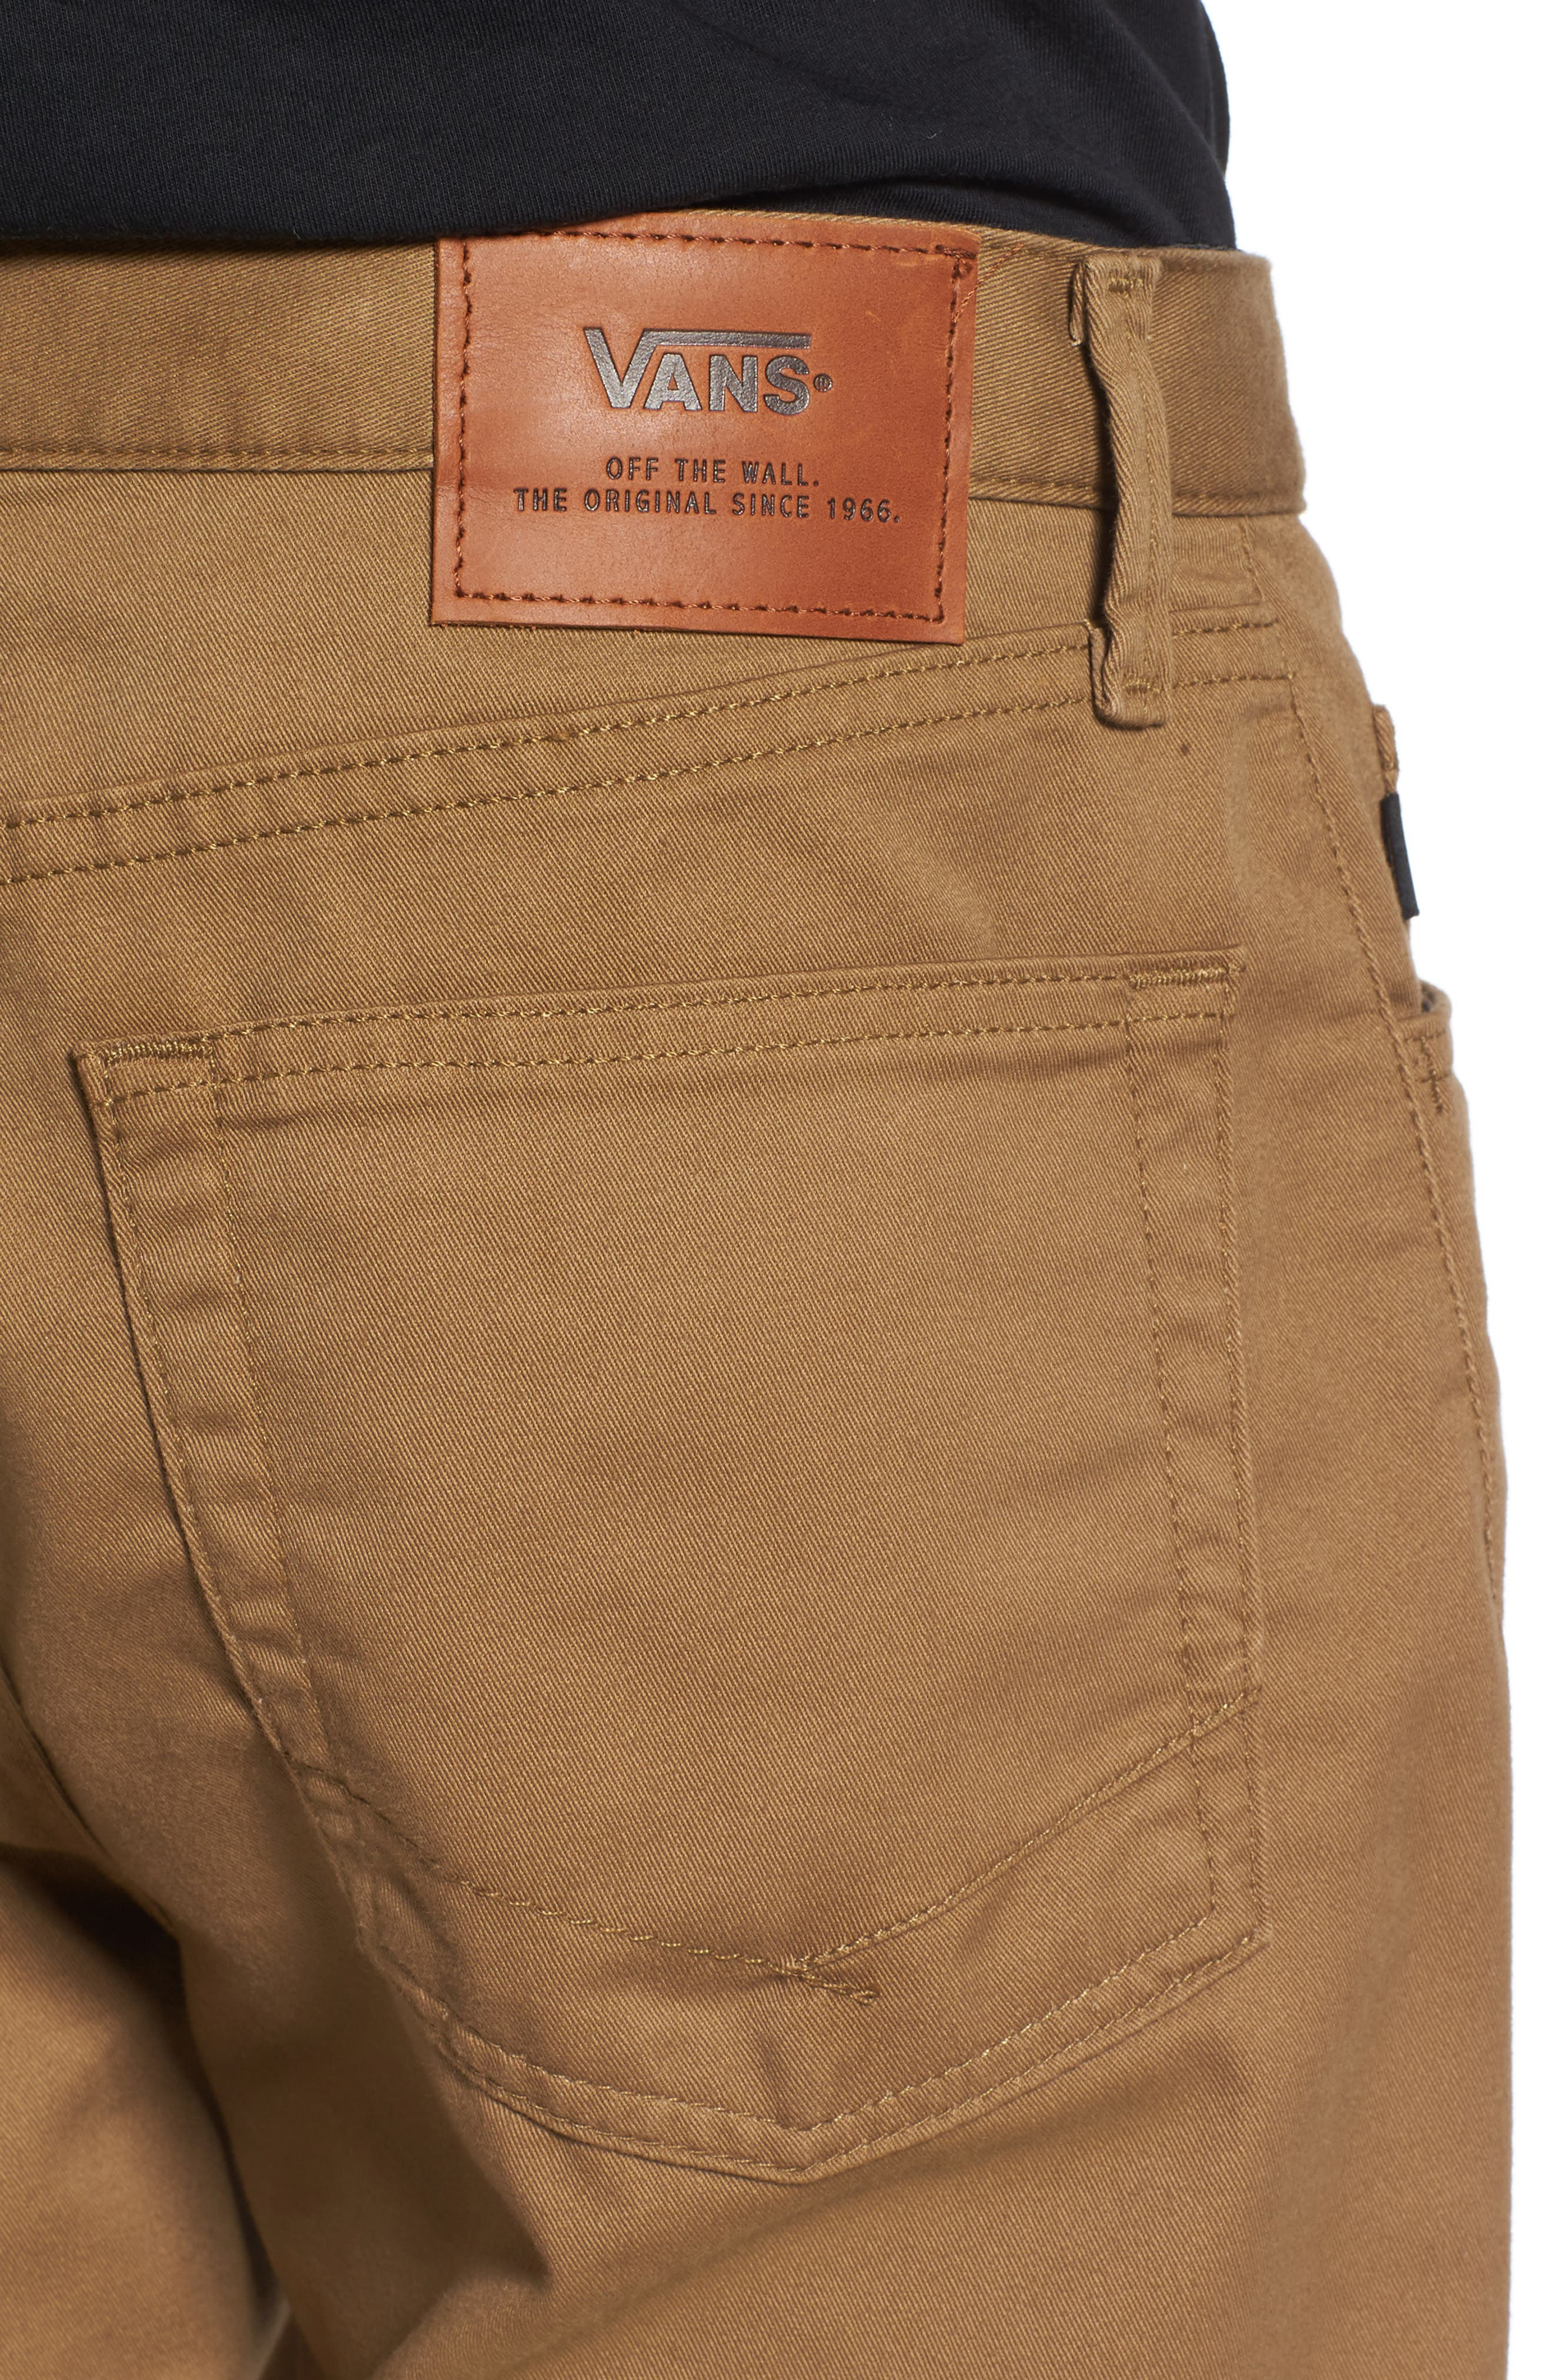 Alternate Image 4  - Vans Covina II - Anthony Van Engelen Twill Shorts